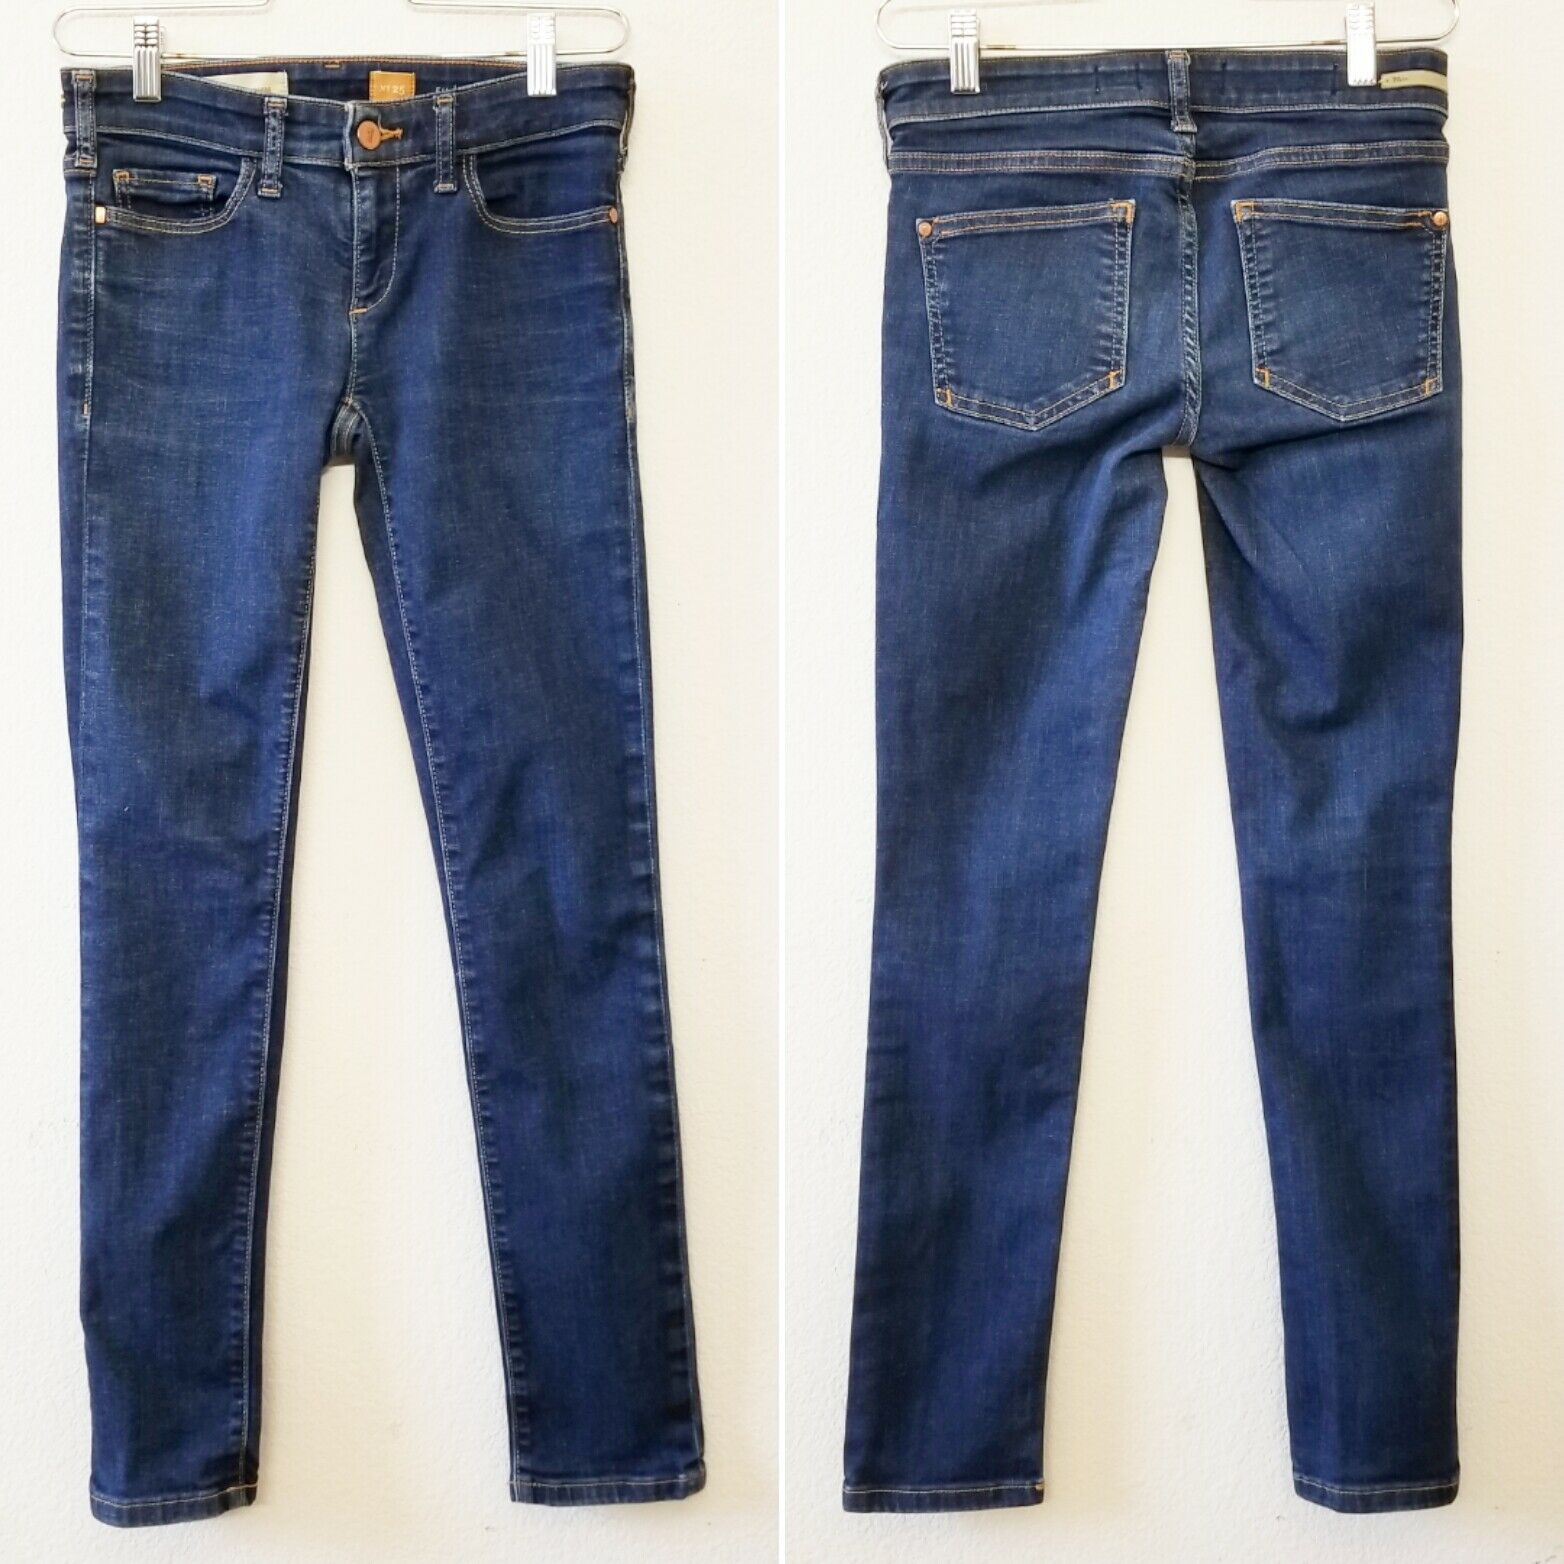 Anthropologie Pilcro And The Letterpress Sz 25 Fit Serif Skinny Jeans 27 x 28